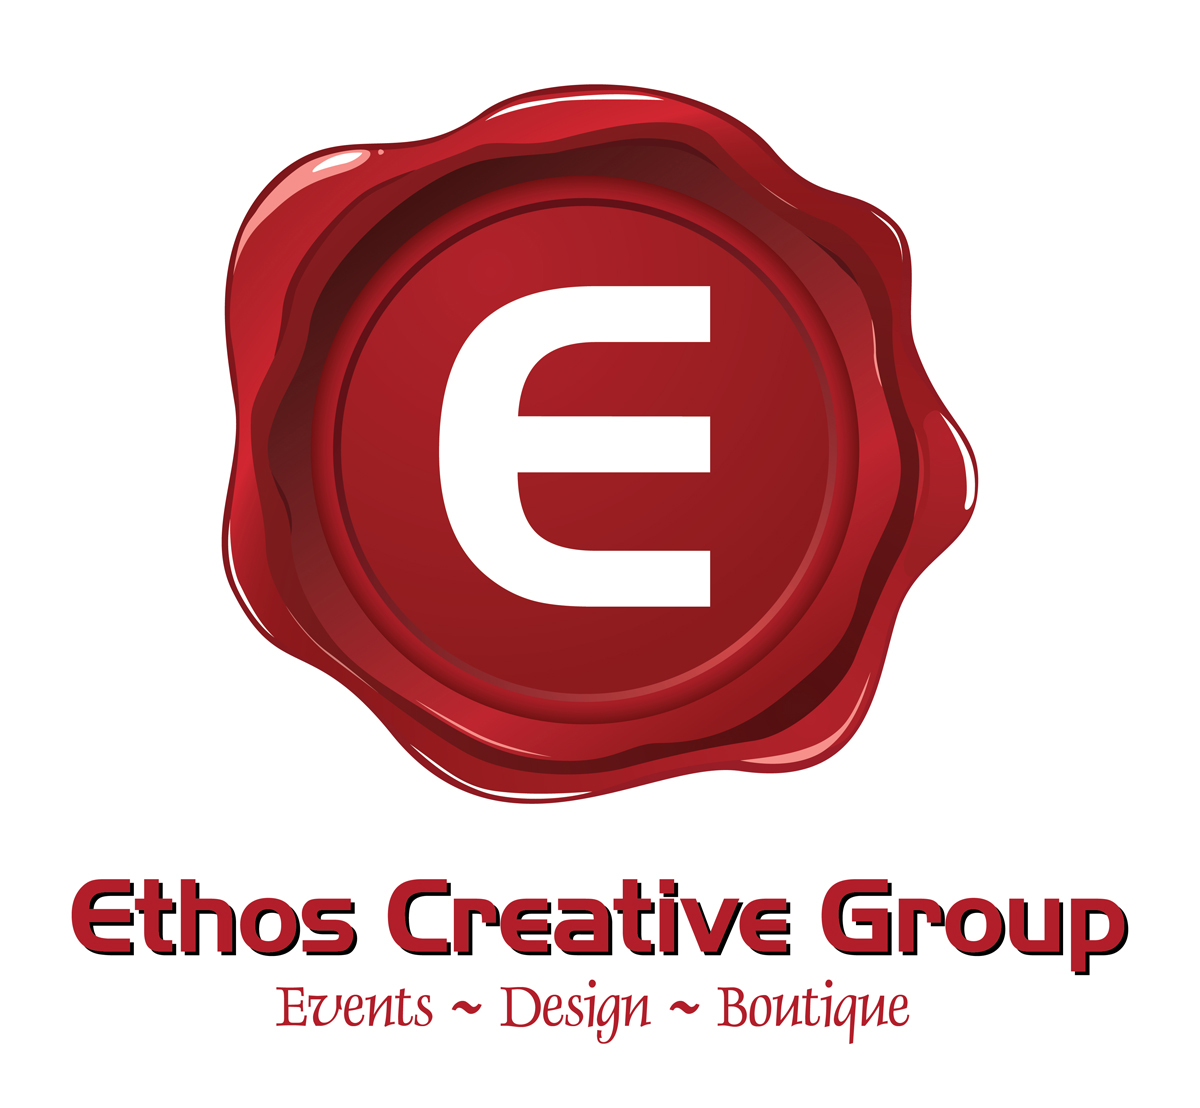 Ethos Creative Group Boutique